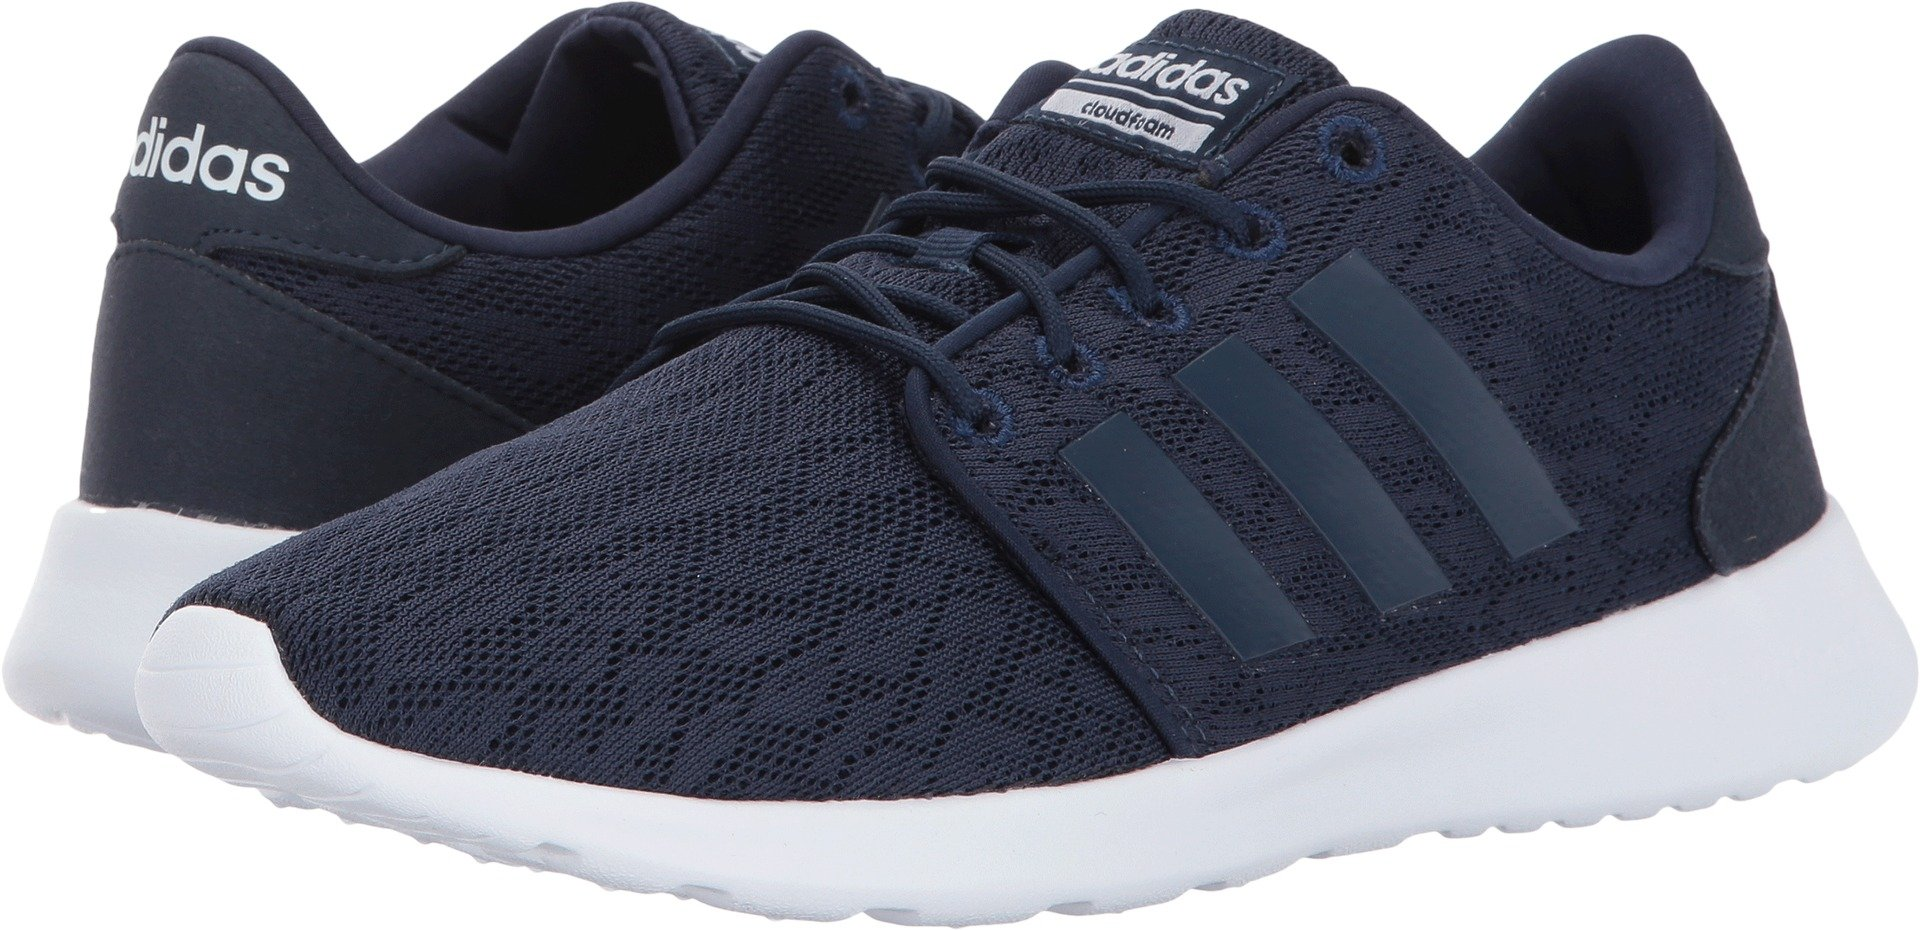 adidas Women's CF QT Racer W Running Shoes, Collegiate Navy/Collegiate Navy/White, (8 Medium US)